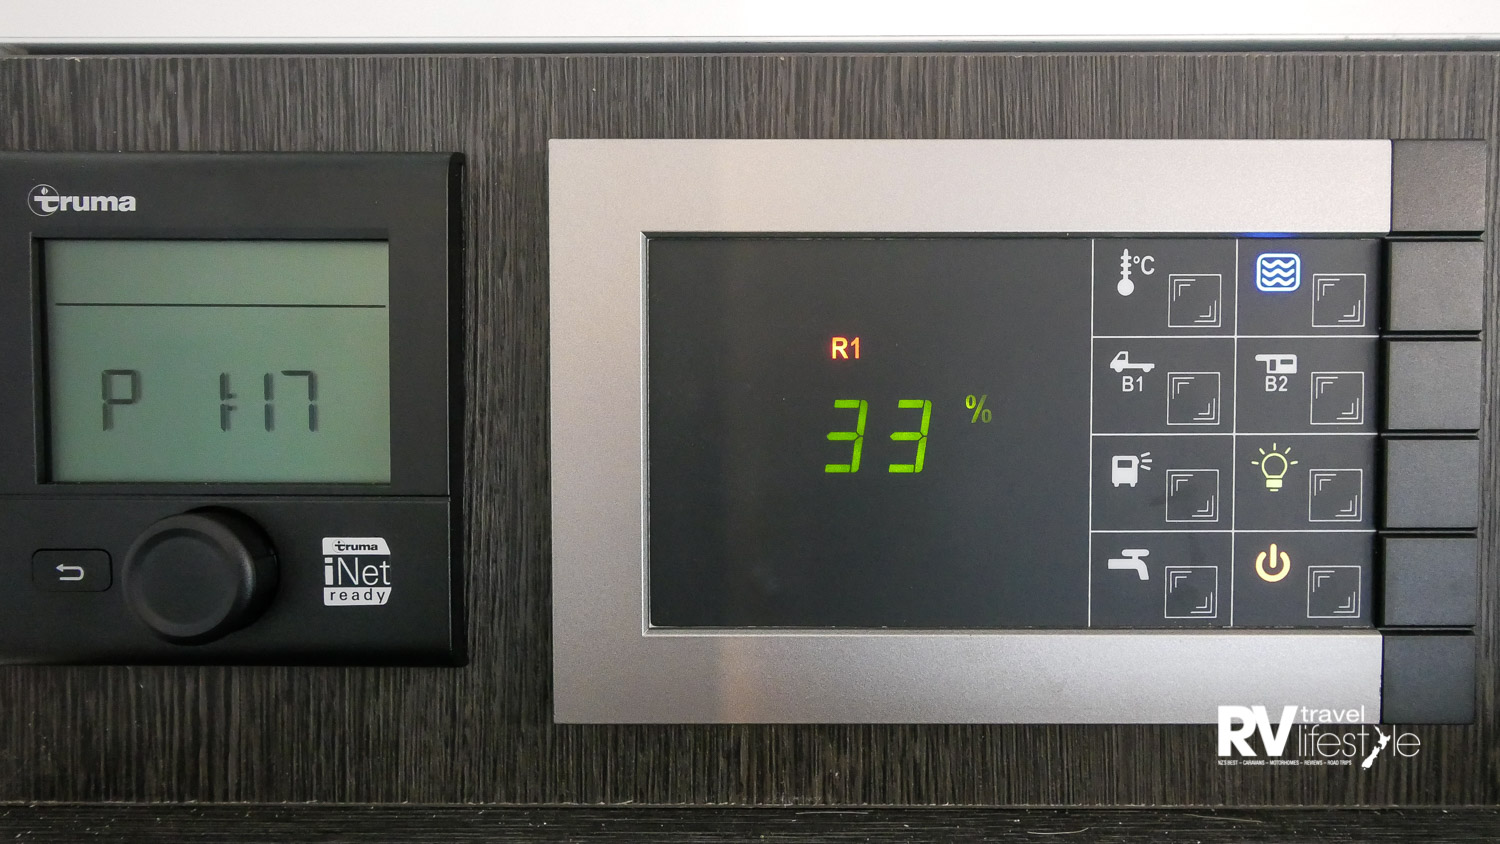 Simple-to-use control panel and heating unit